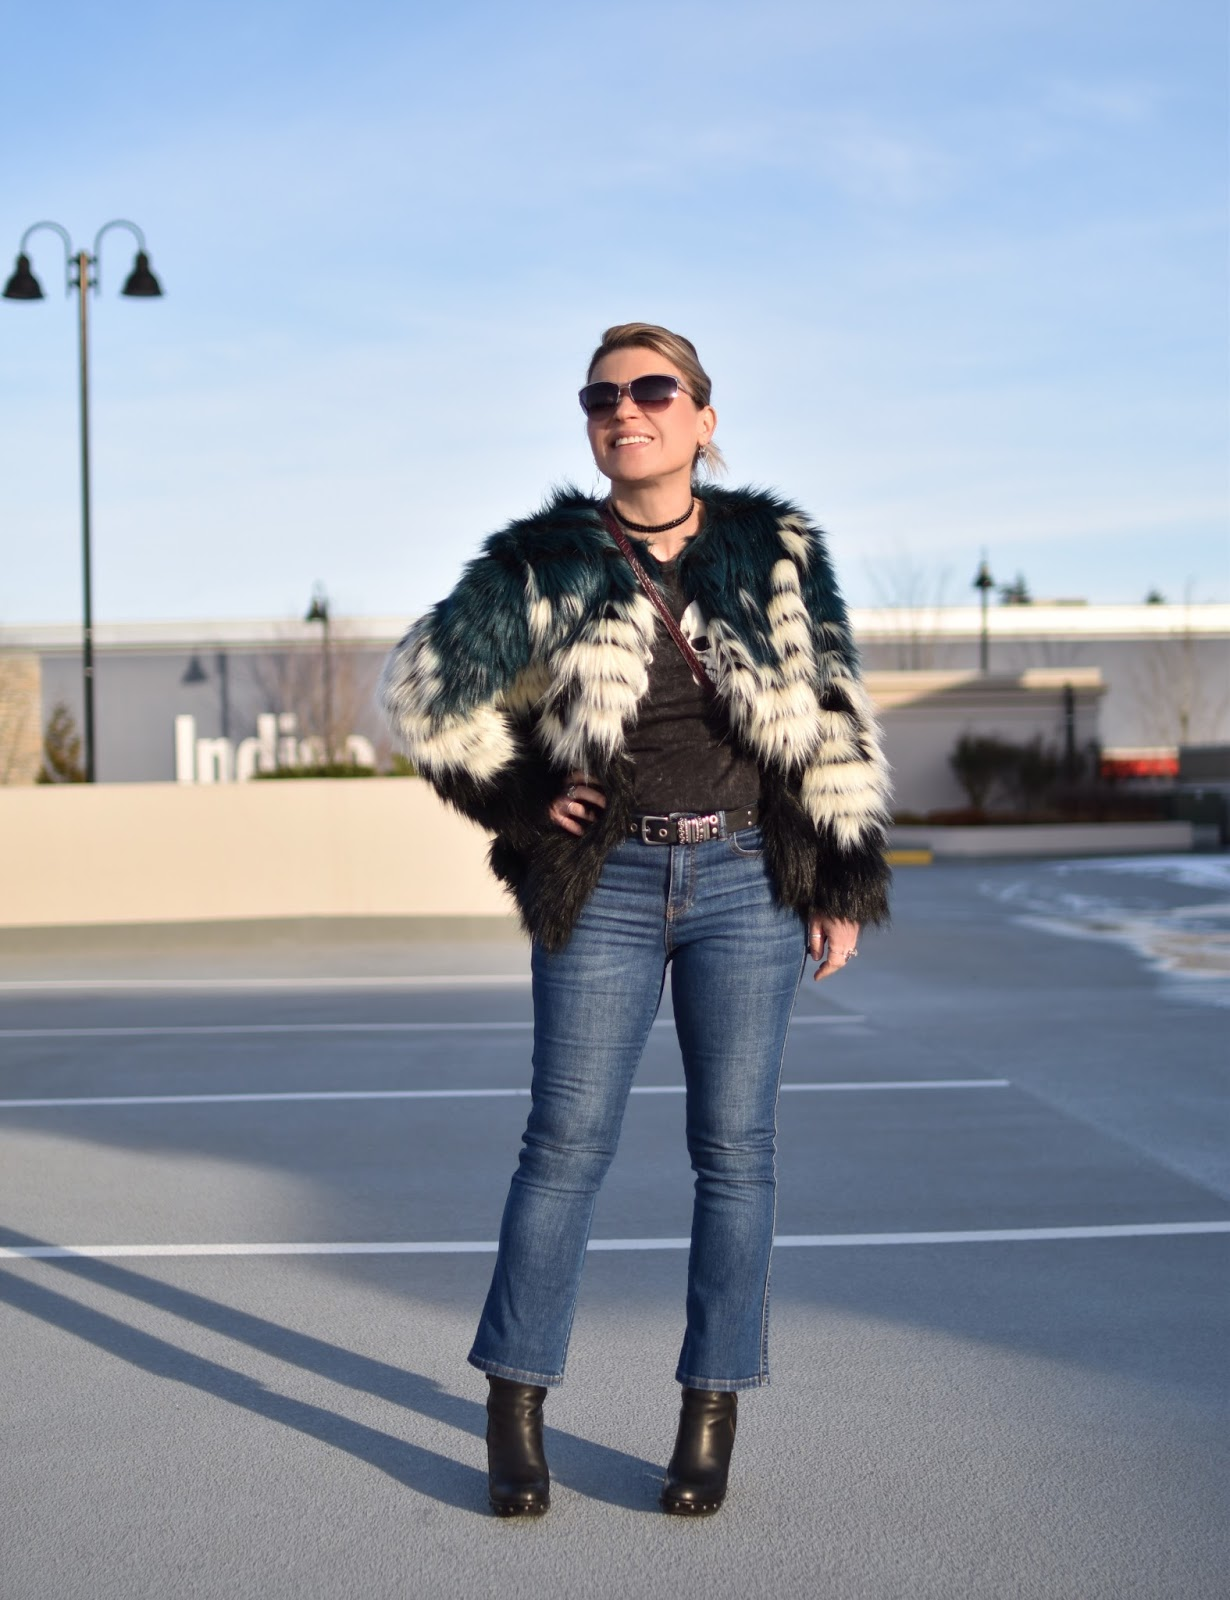 Monika Faulkner outfit inspiration - styling a skull-motif tee with cropped flare jeans, platform booties, and a faux-fur jacket